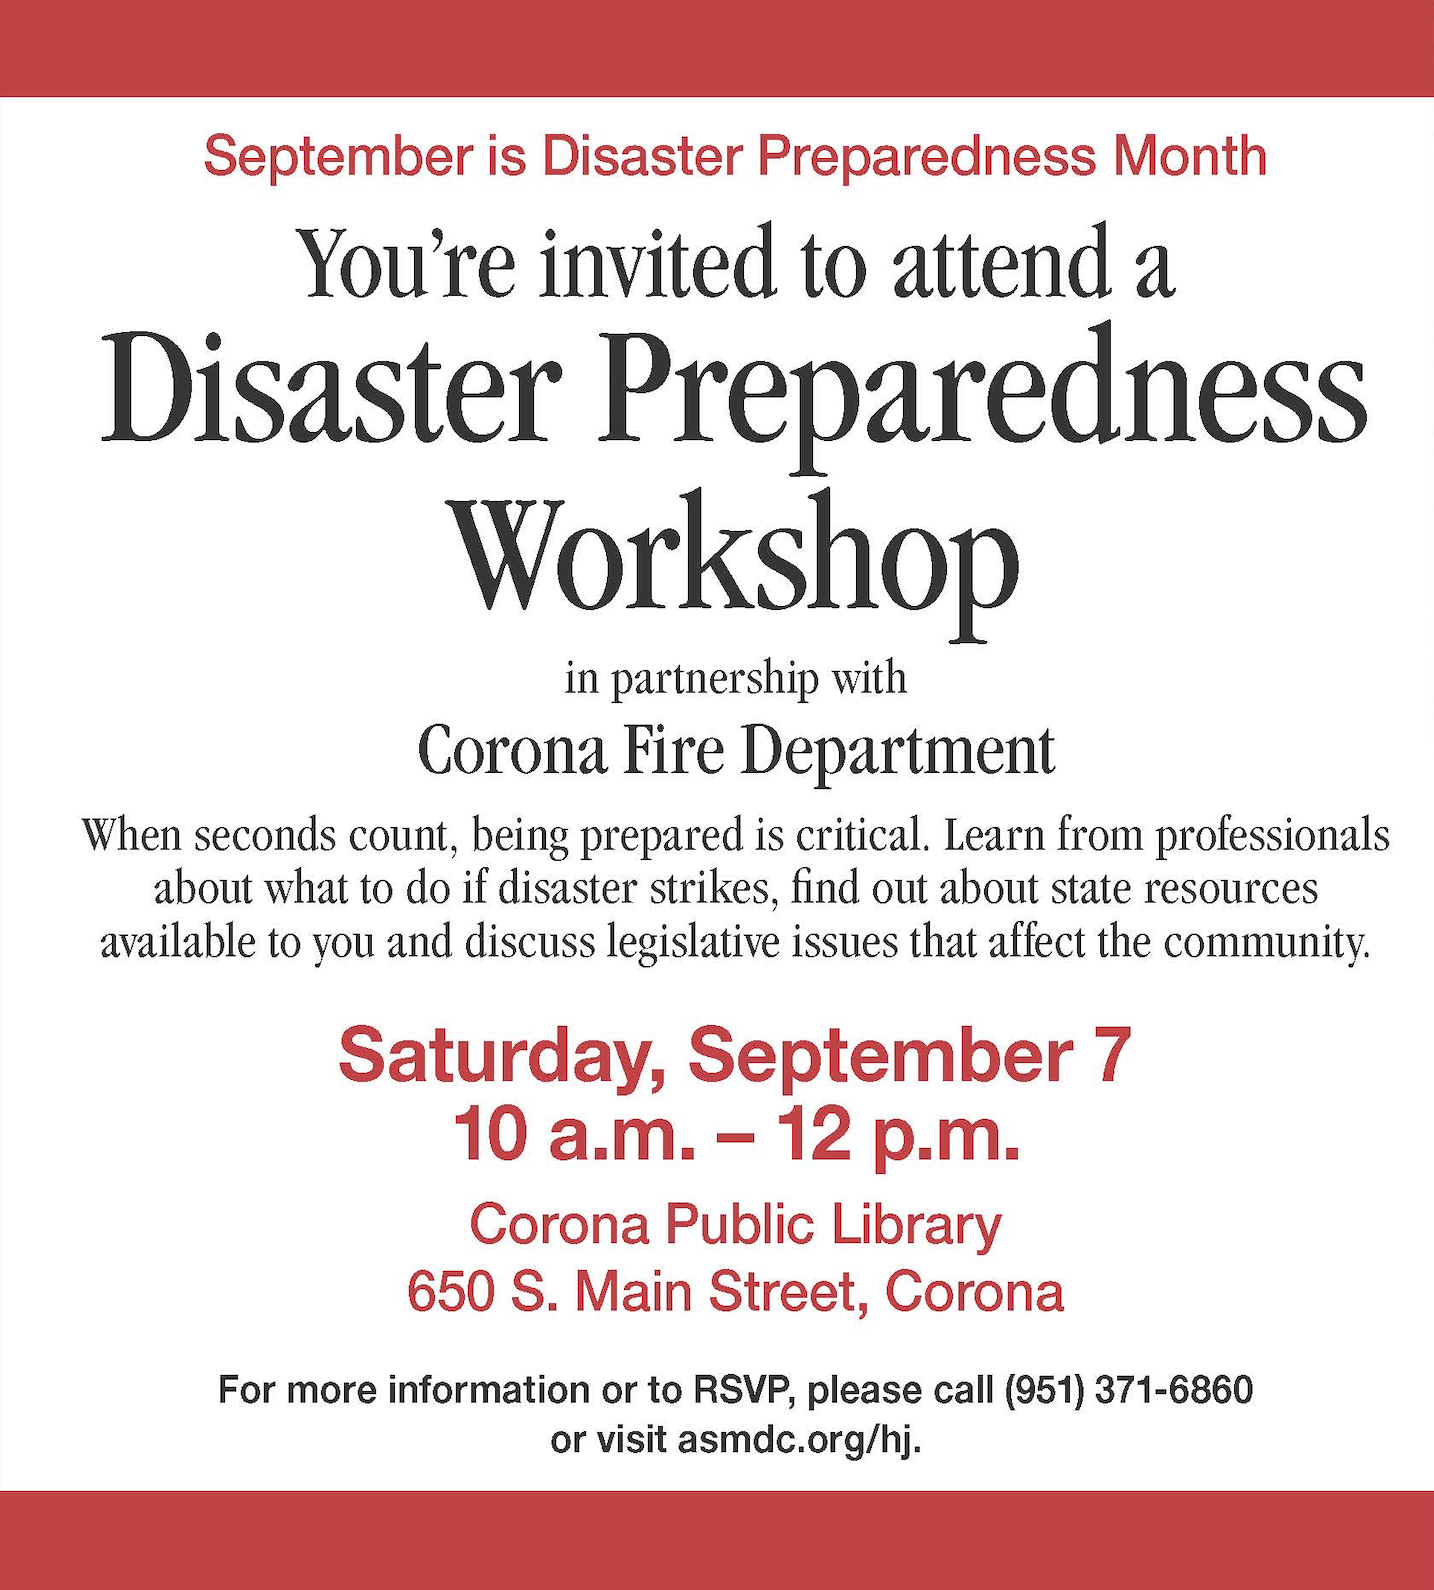 Disaster Preparedness with Assemblymember Sabrina Cervantes